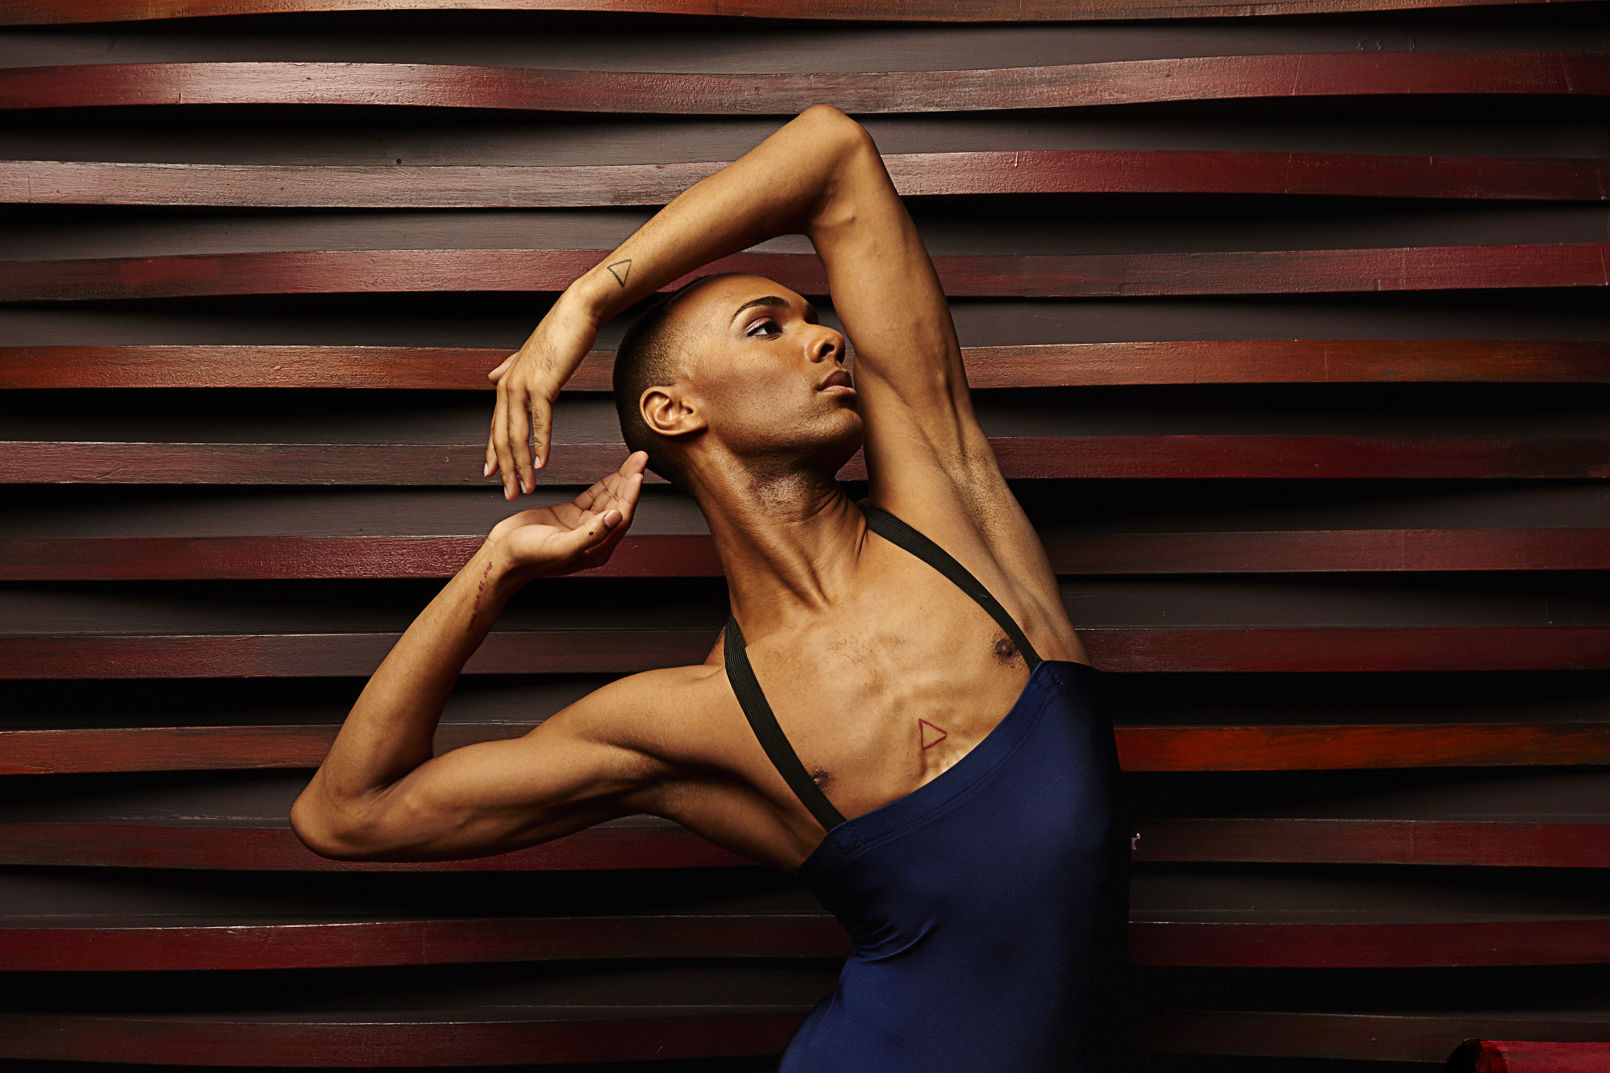 Alvin ailey american dance theater s sean aaron carmon in south africa. photo by andrew eccles  vmg1lm